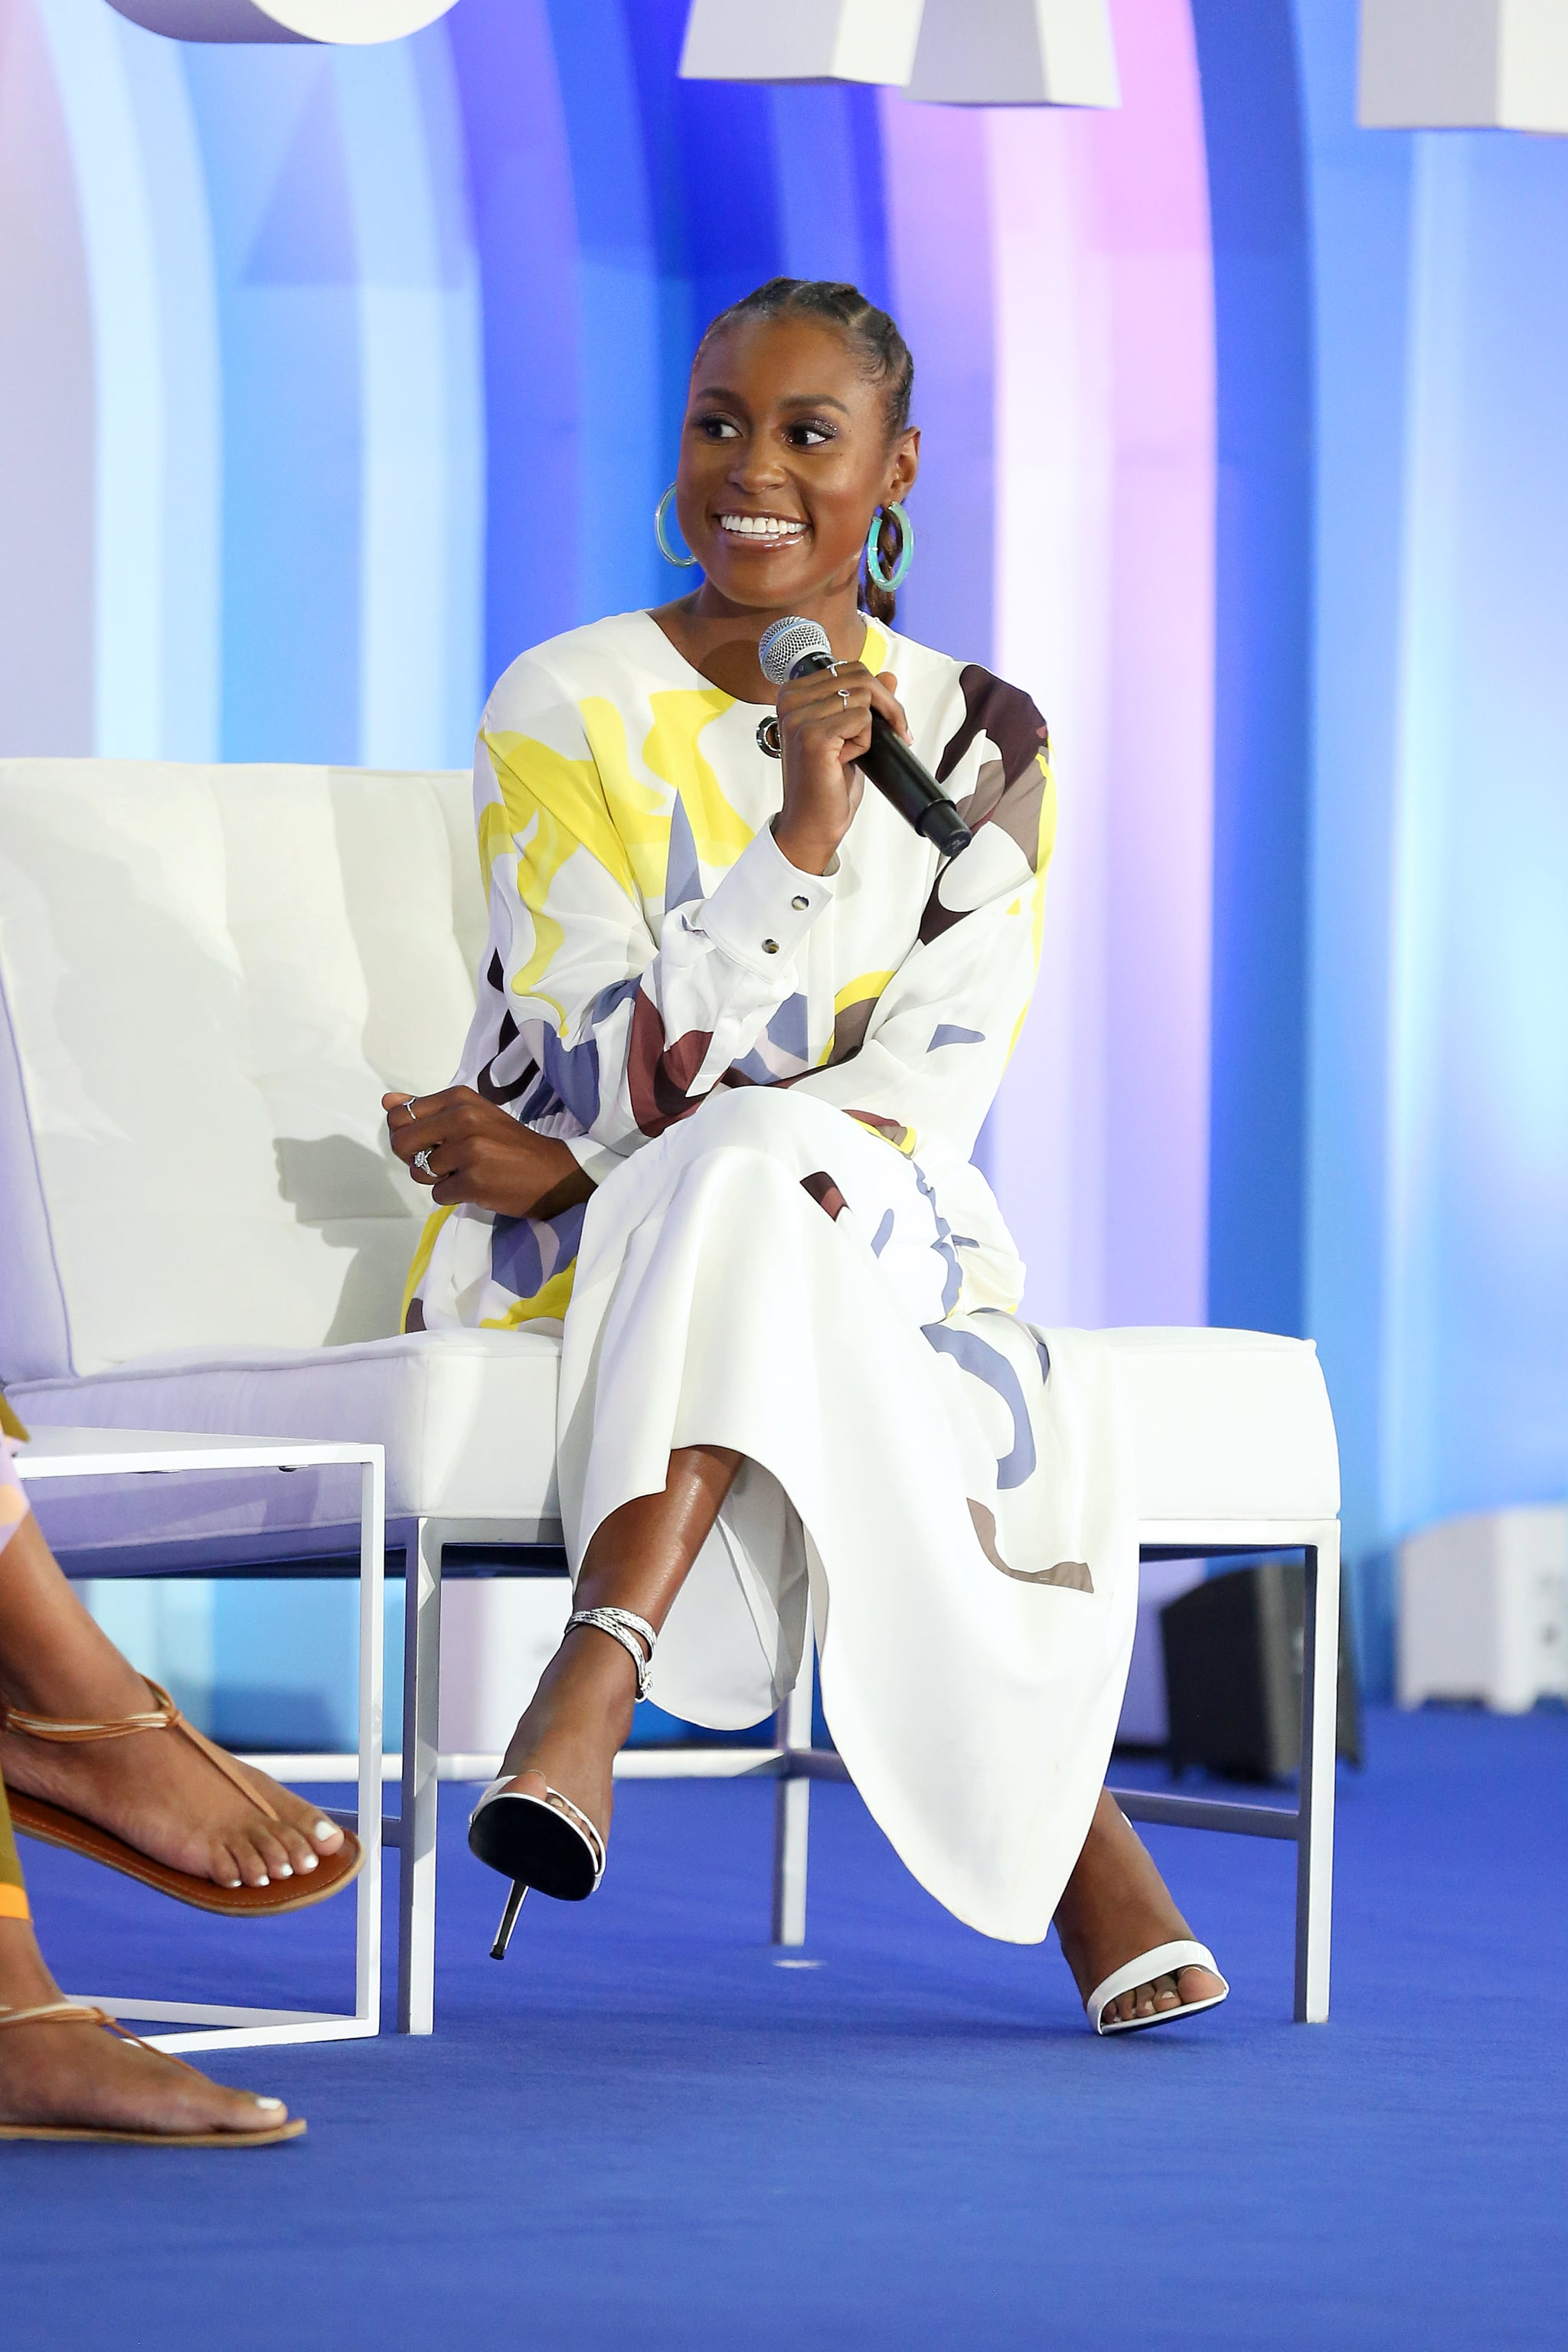 NEW YORK, NEW YORK - JUNE 23: Issa Rae speaks during